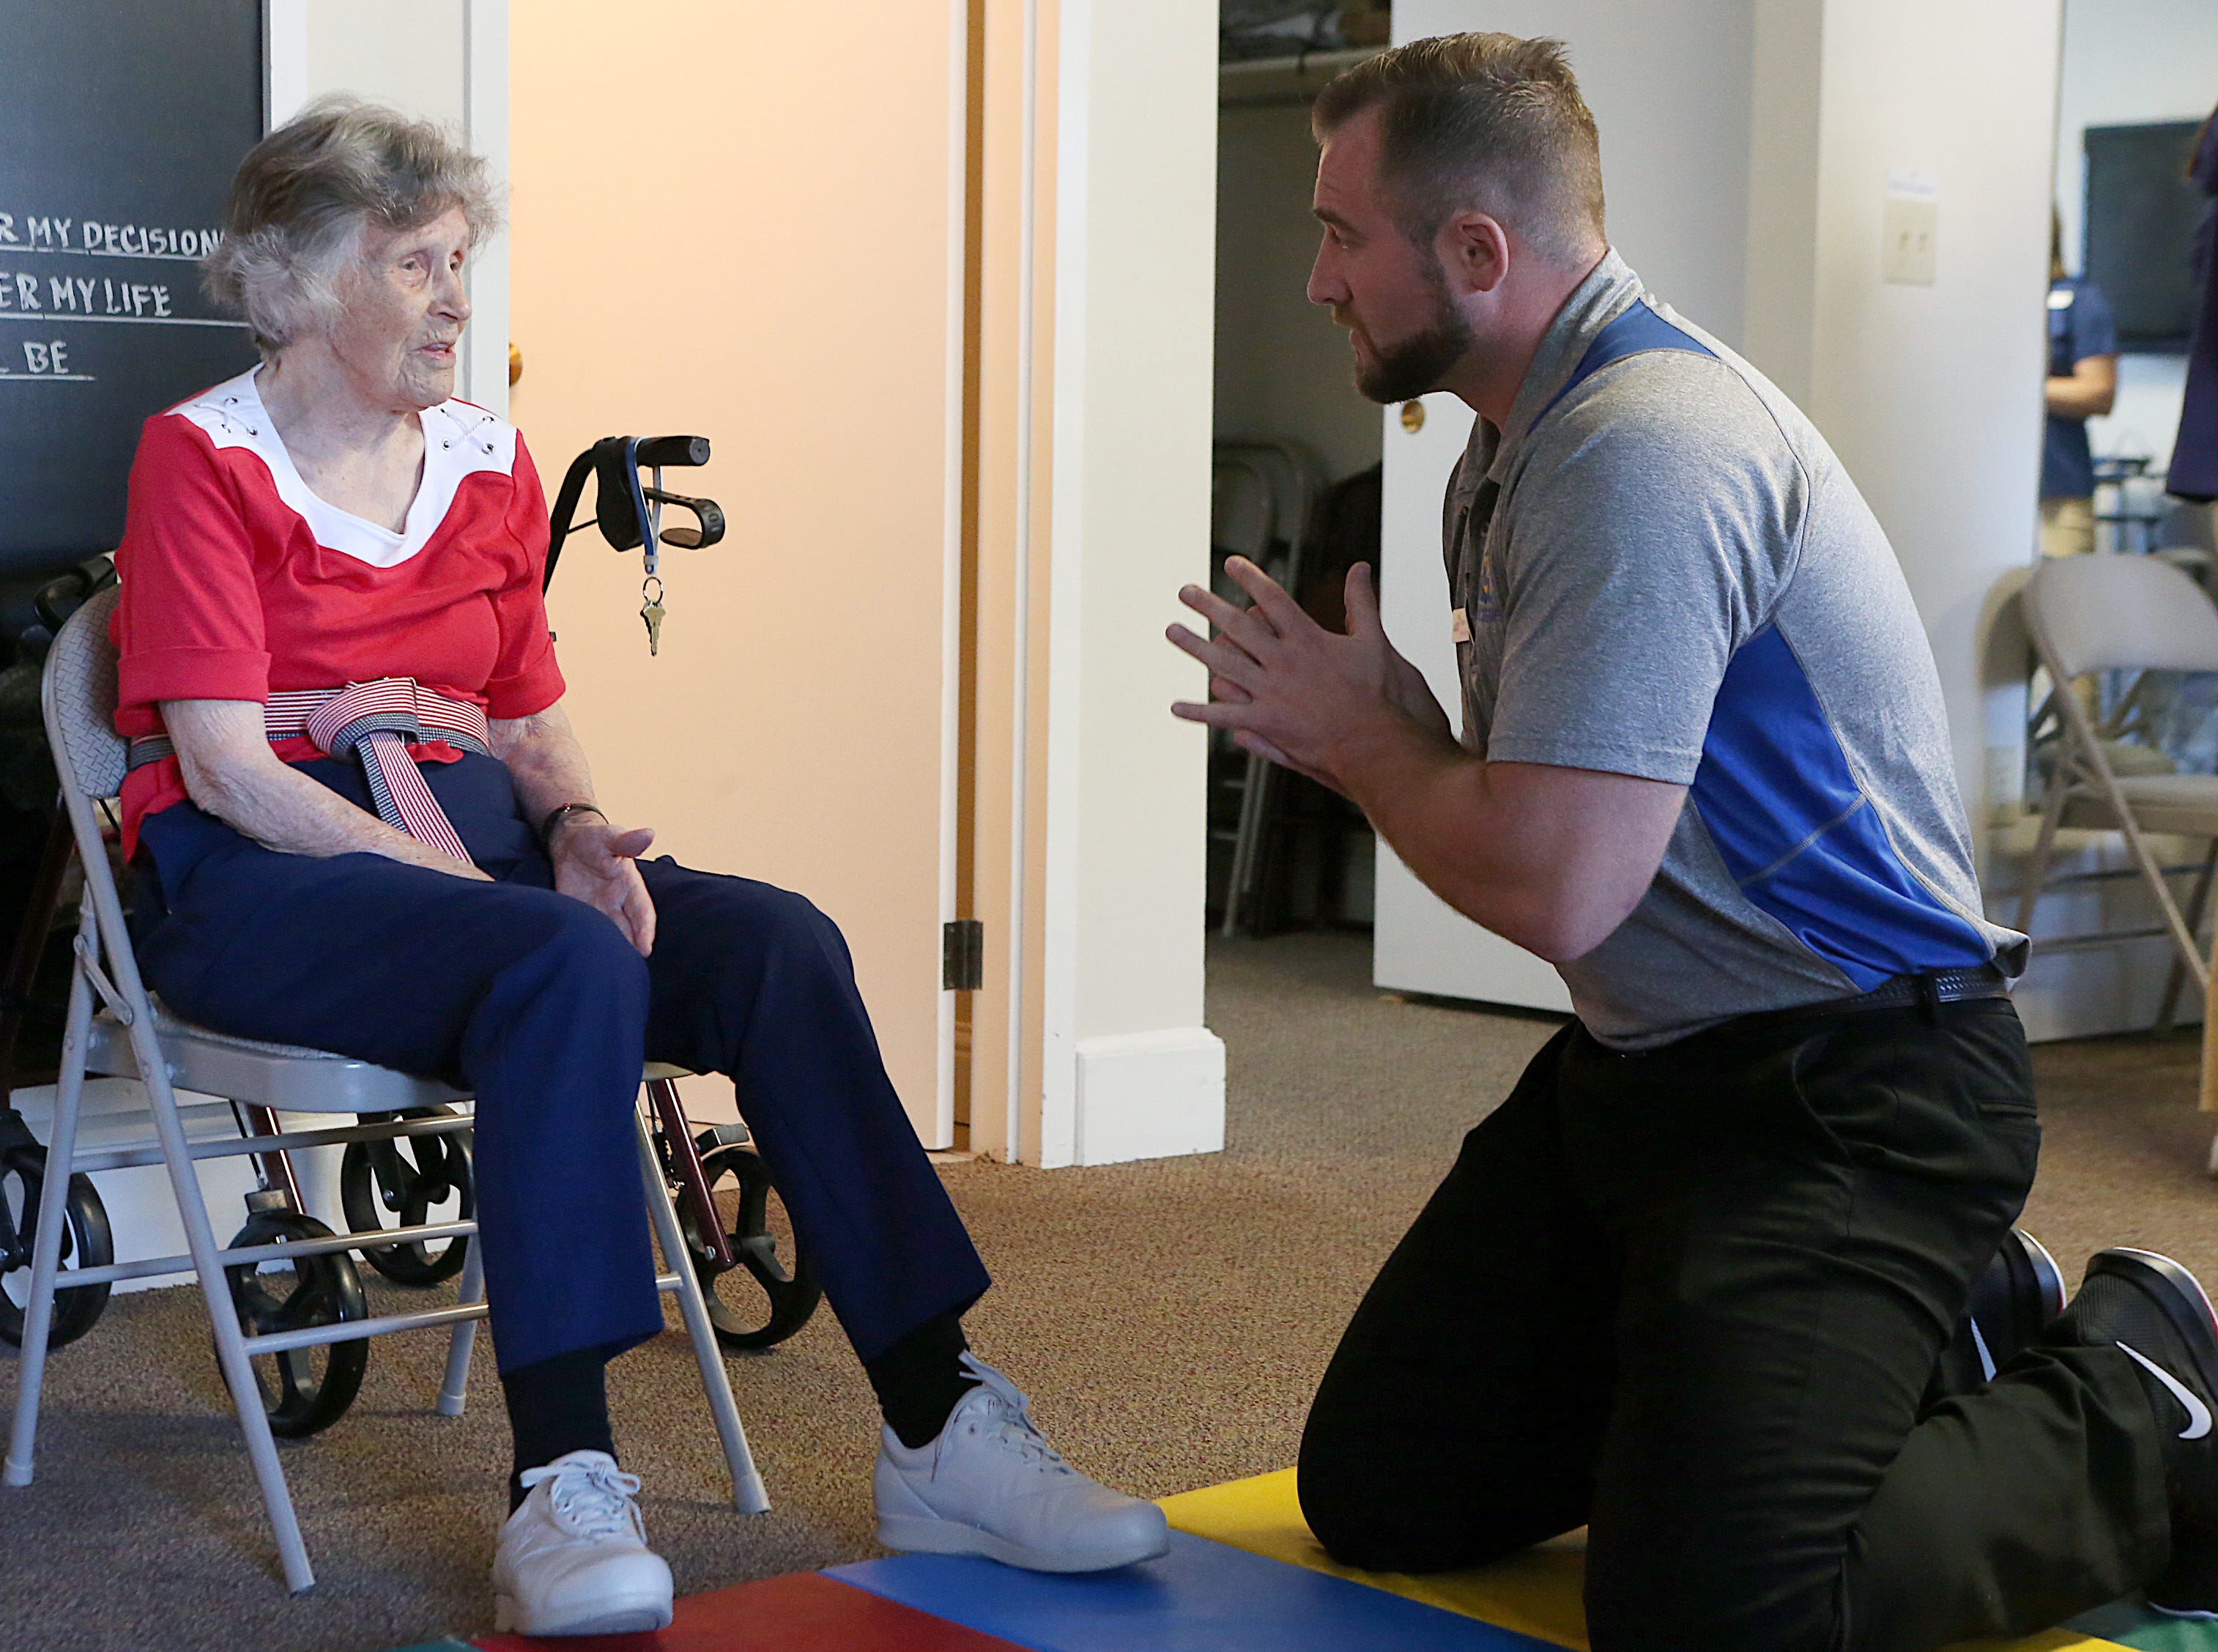 Residents Barbara Marshal talks with Dan Grimes, a physical therapy student from Angelo State University, during a Balance and Fall Risk Reduction Program for seniors at Baptist Retirement Community Monday, Oct. 1, 2018.